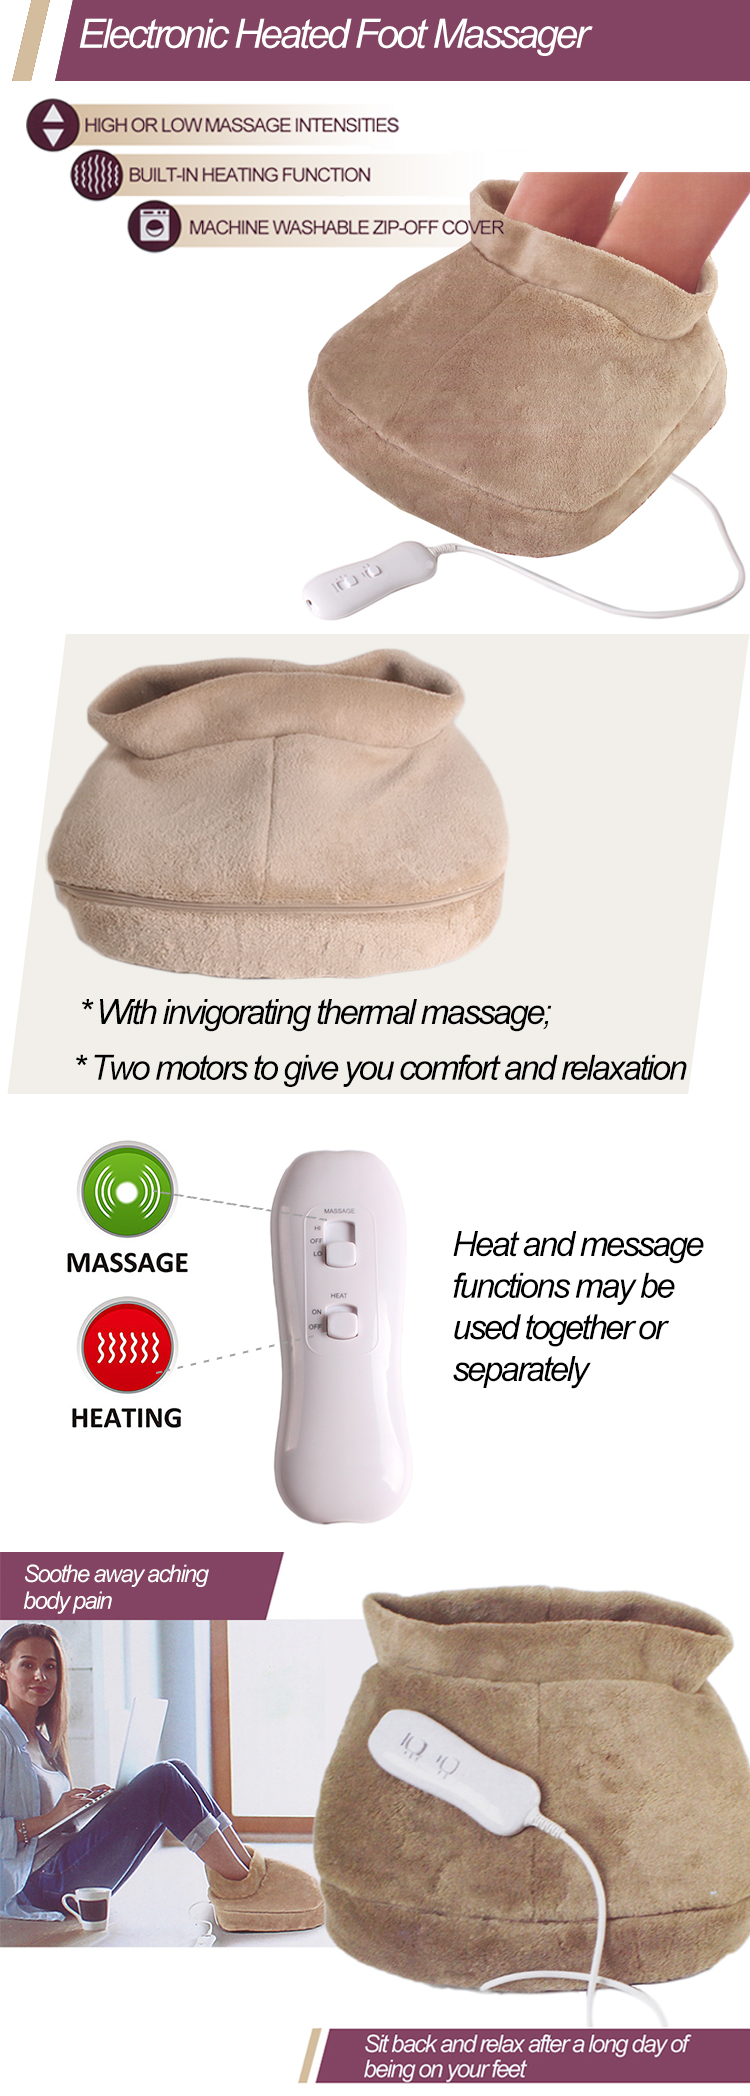 Electronic Heated Foot Massager